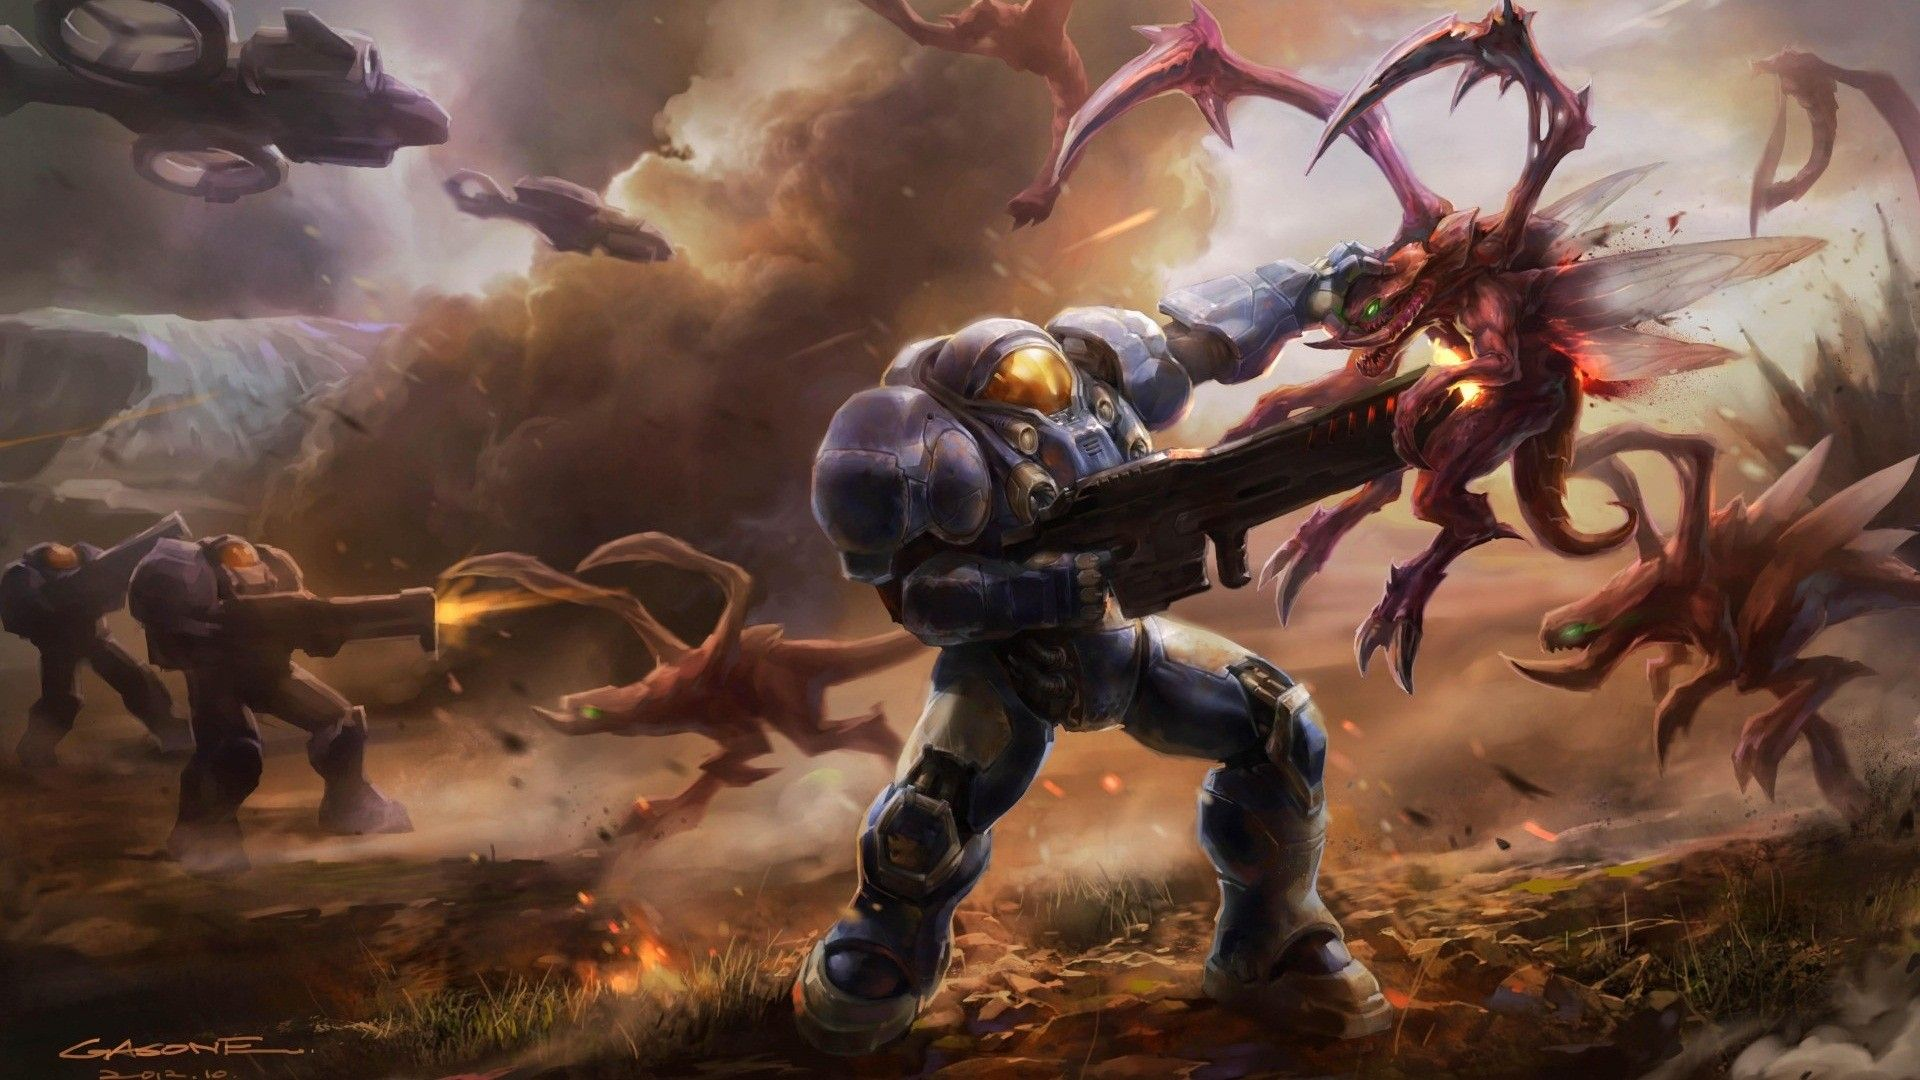 Space Marines fighting StarCraft II wallpaper Game wallpapers